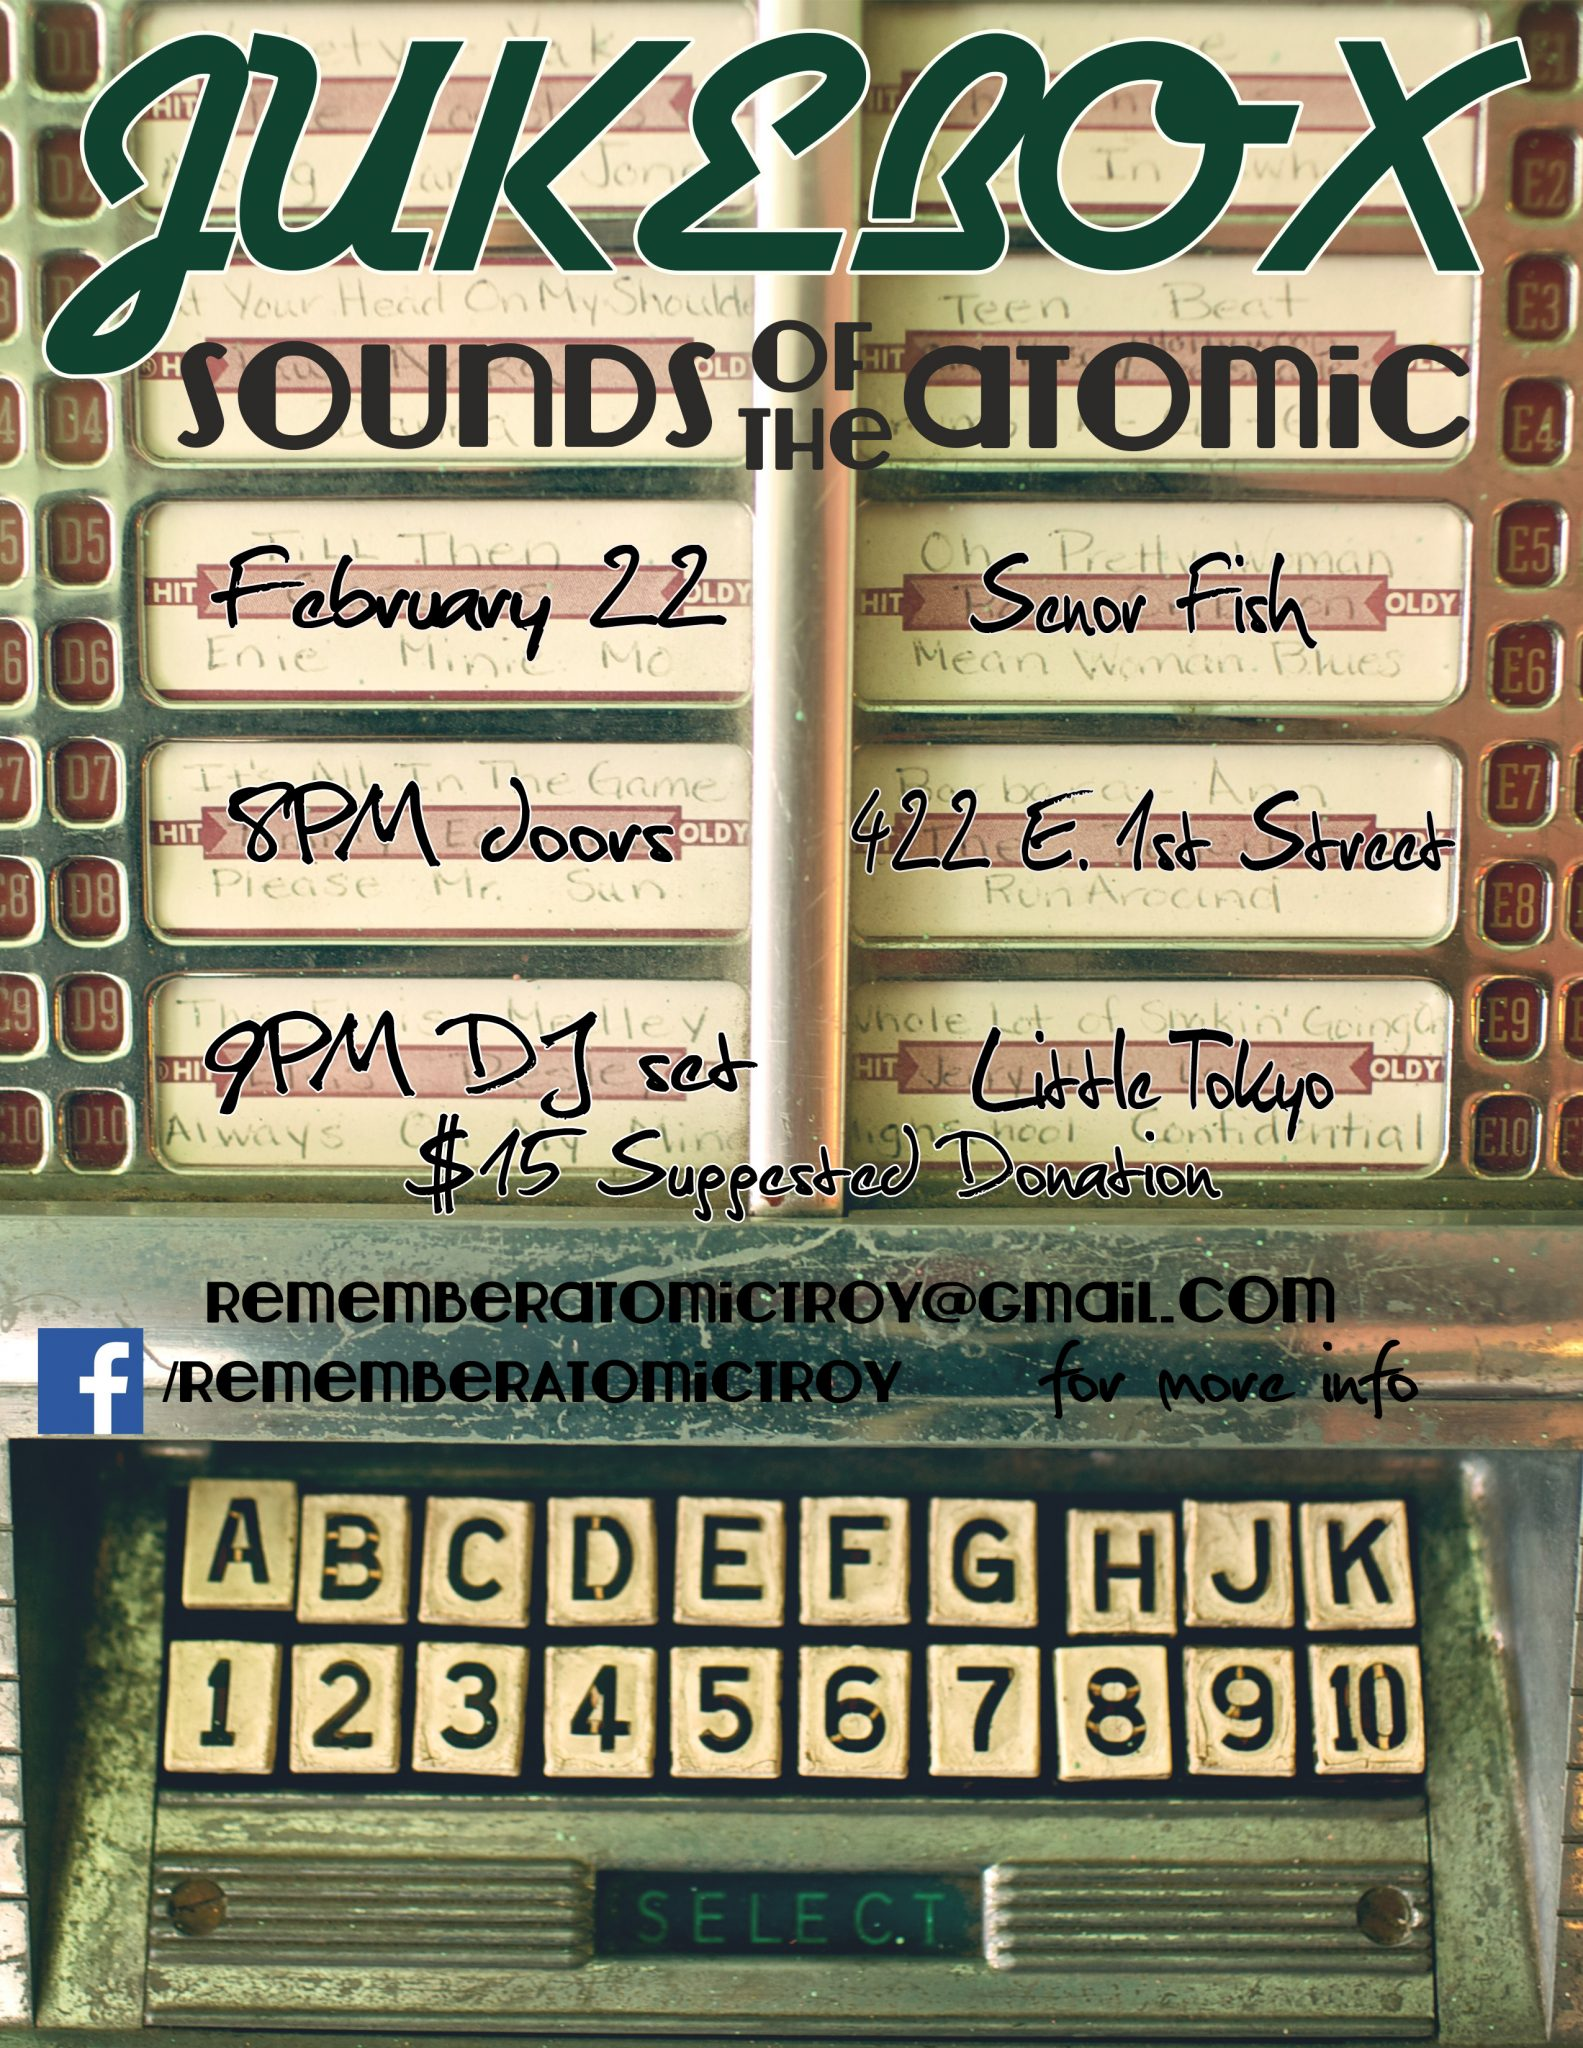 JUKEBOX: Sounds of the Atomic - February 22nd - January 31, 2014